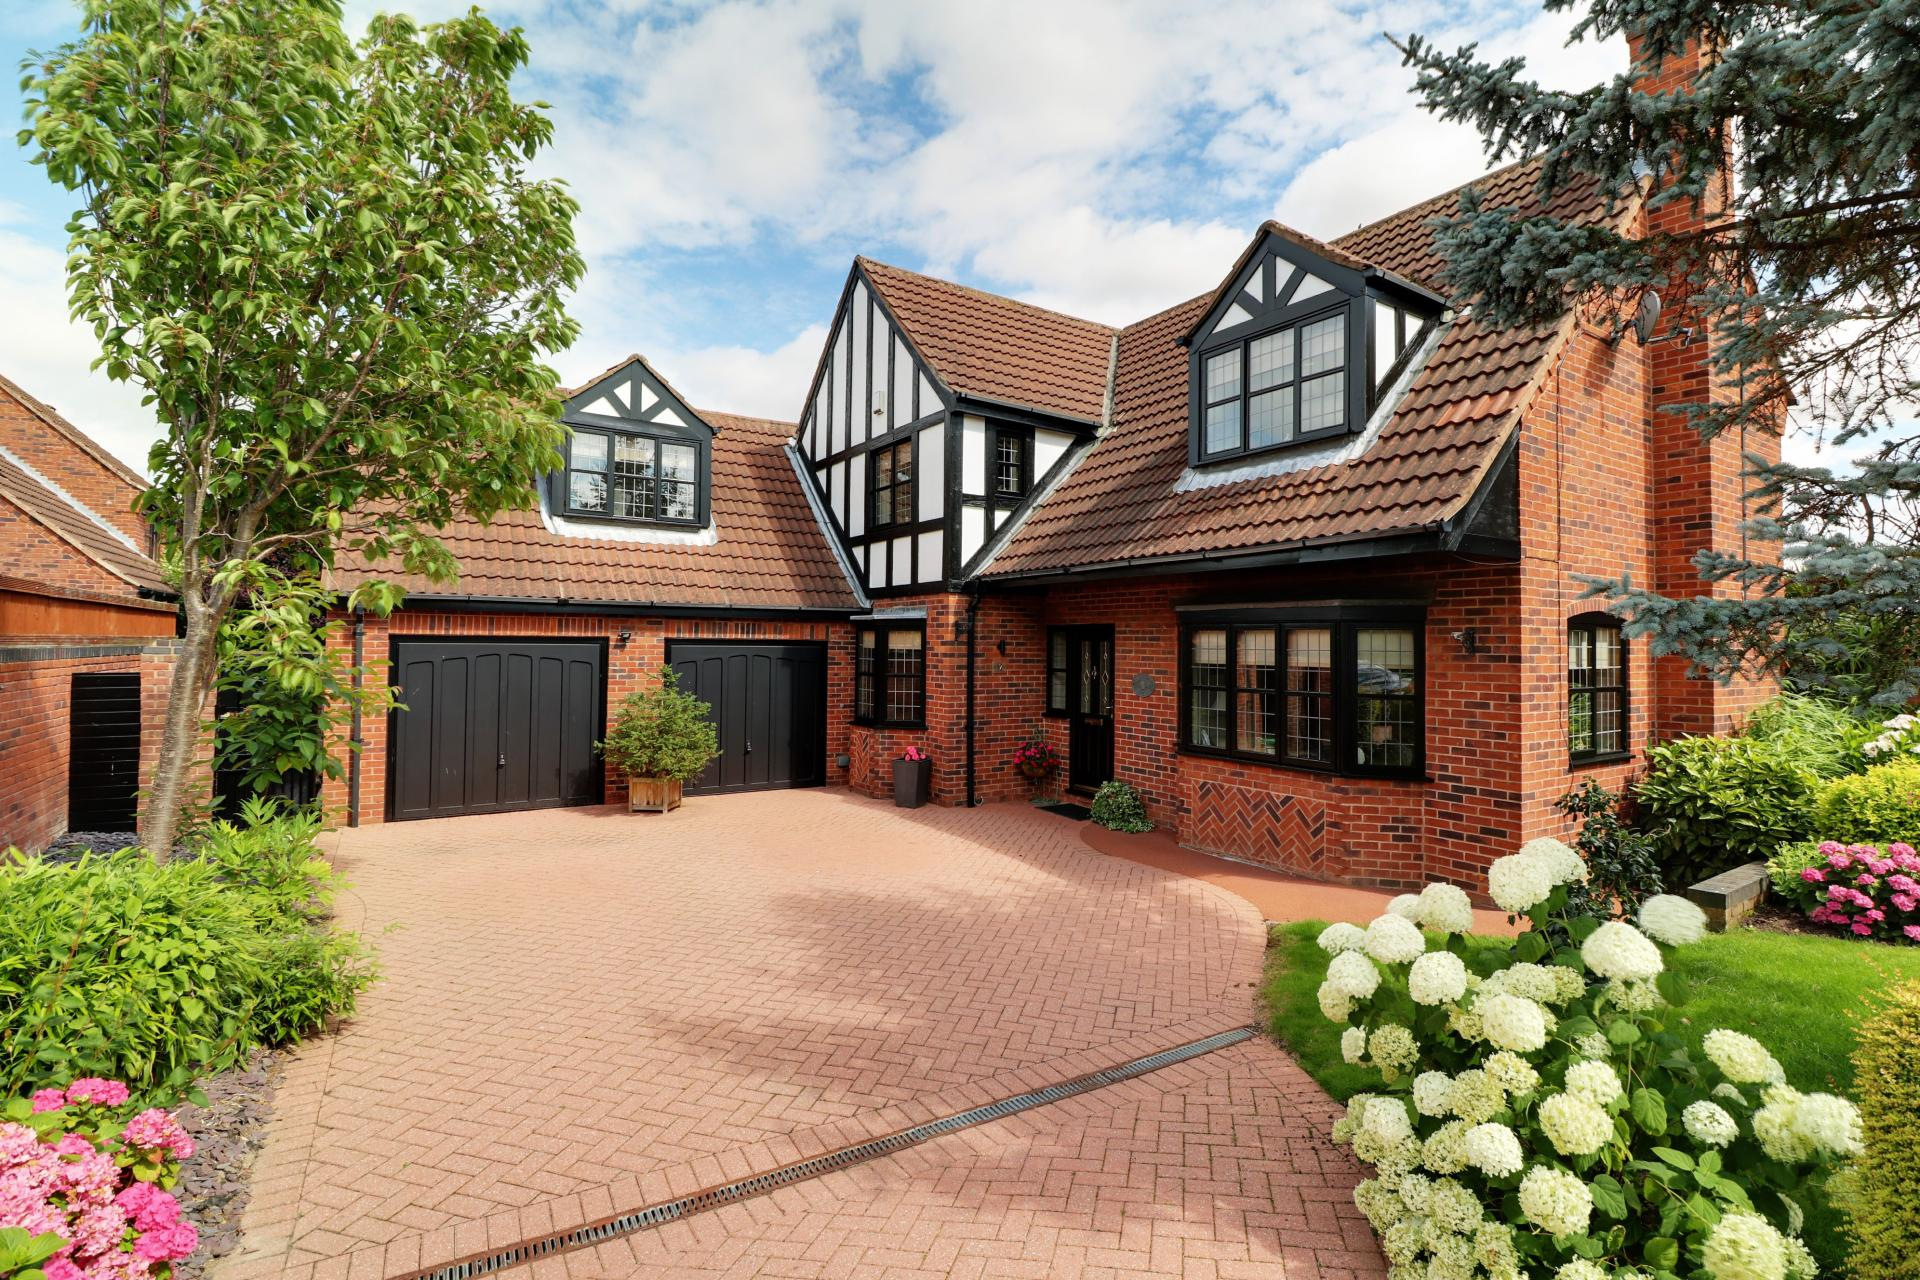 beautiful family home with driveway gardens in epworth lincolnshire